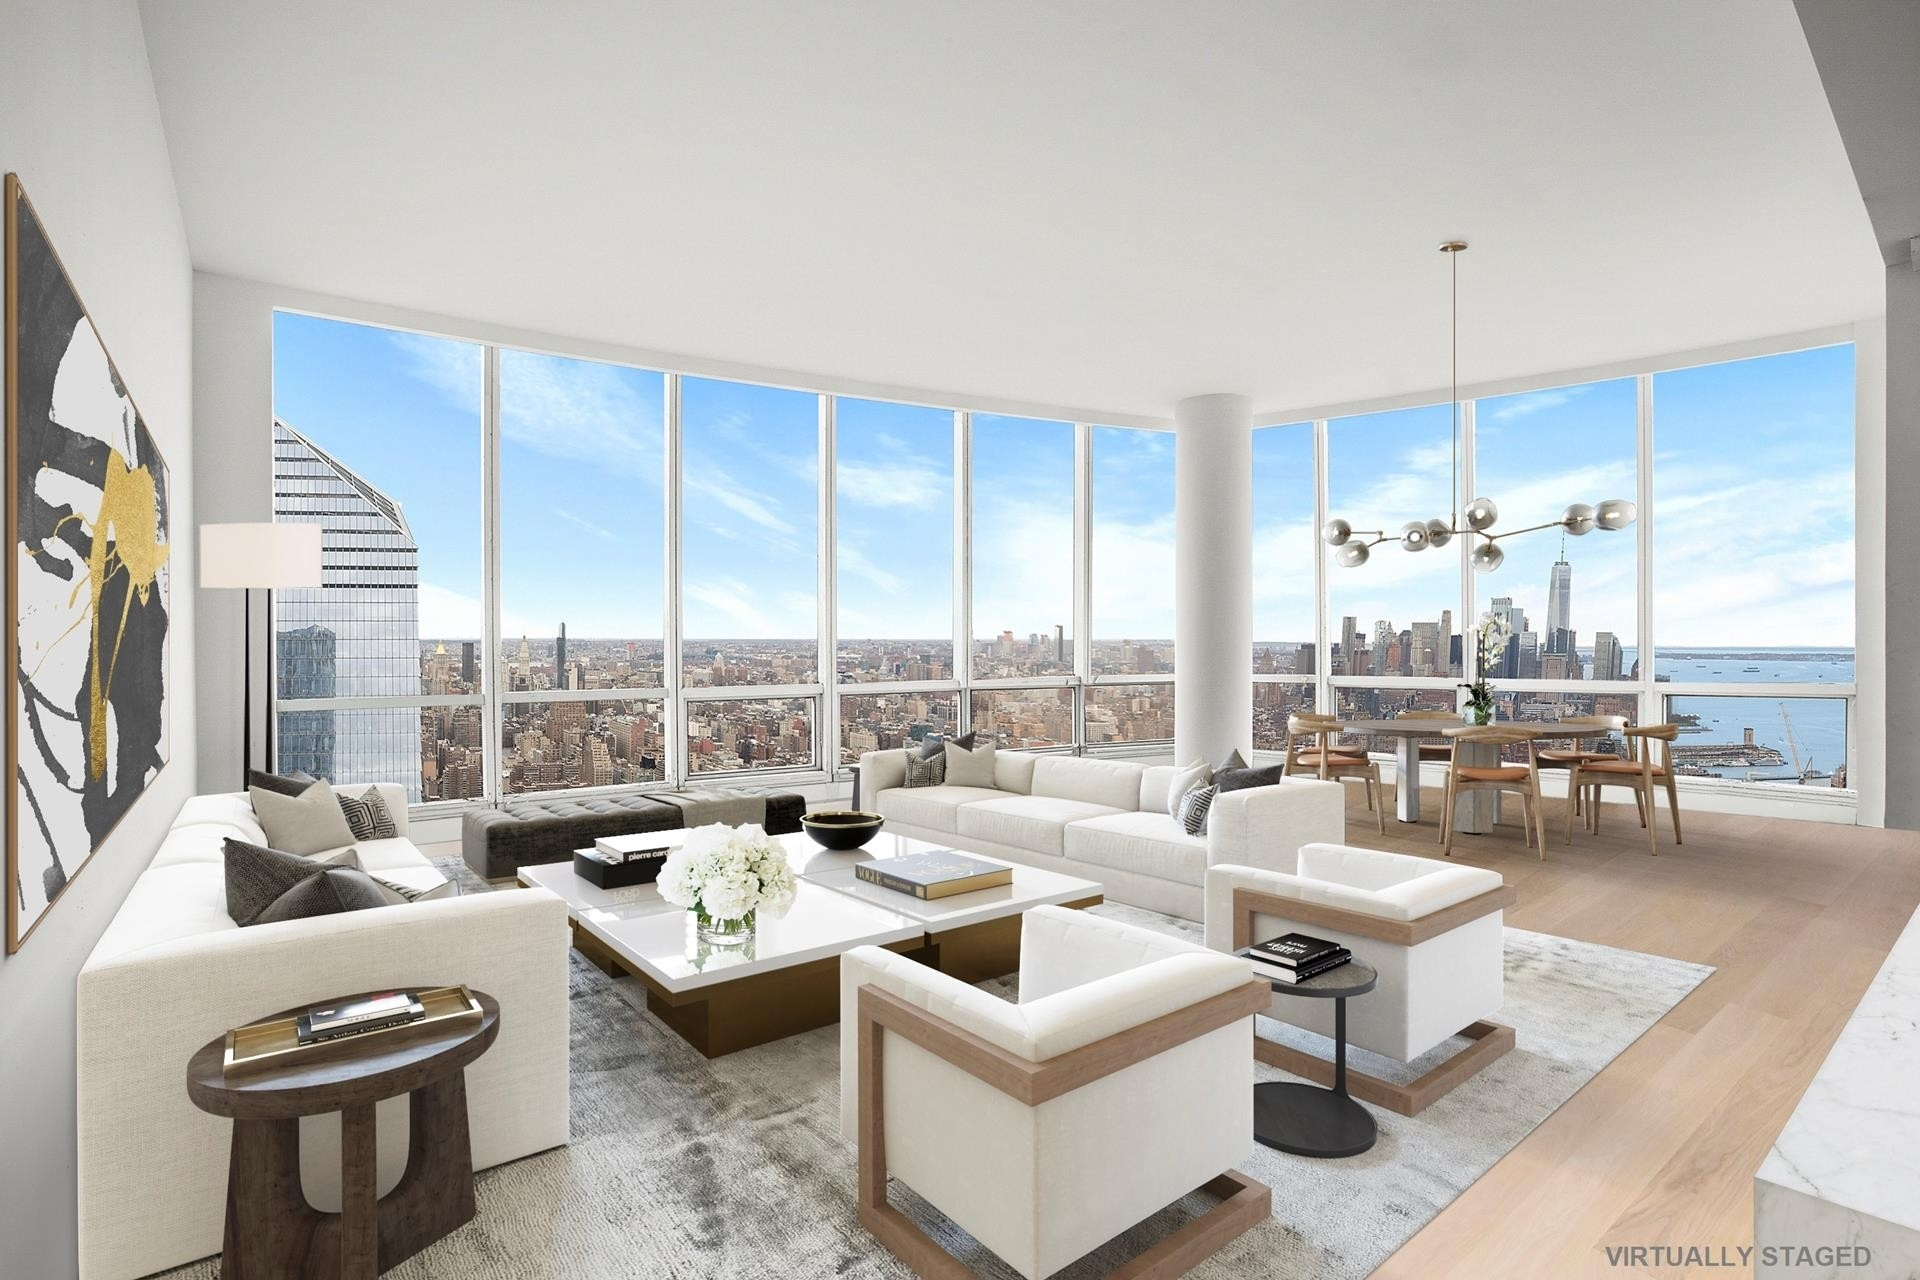 Property at 15 Hudson Yards, 74A New York